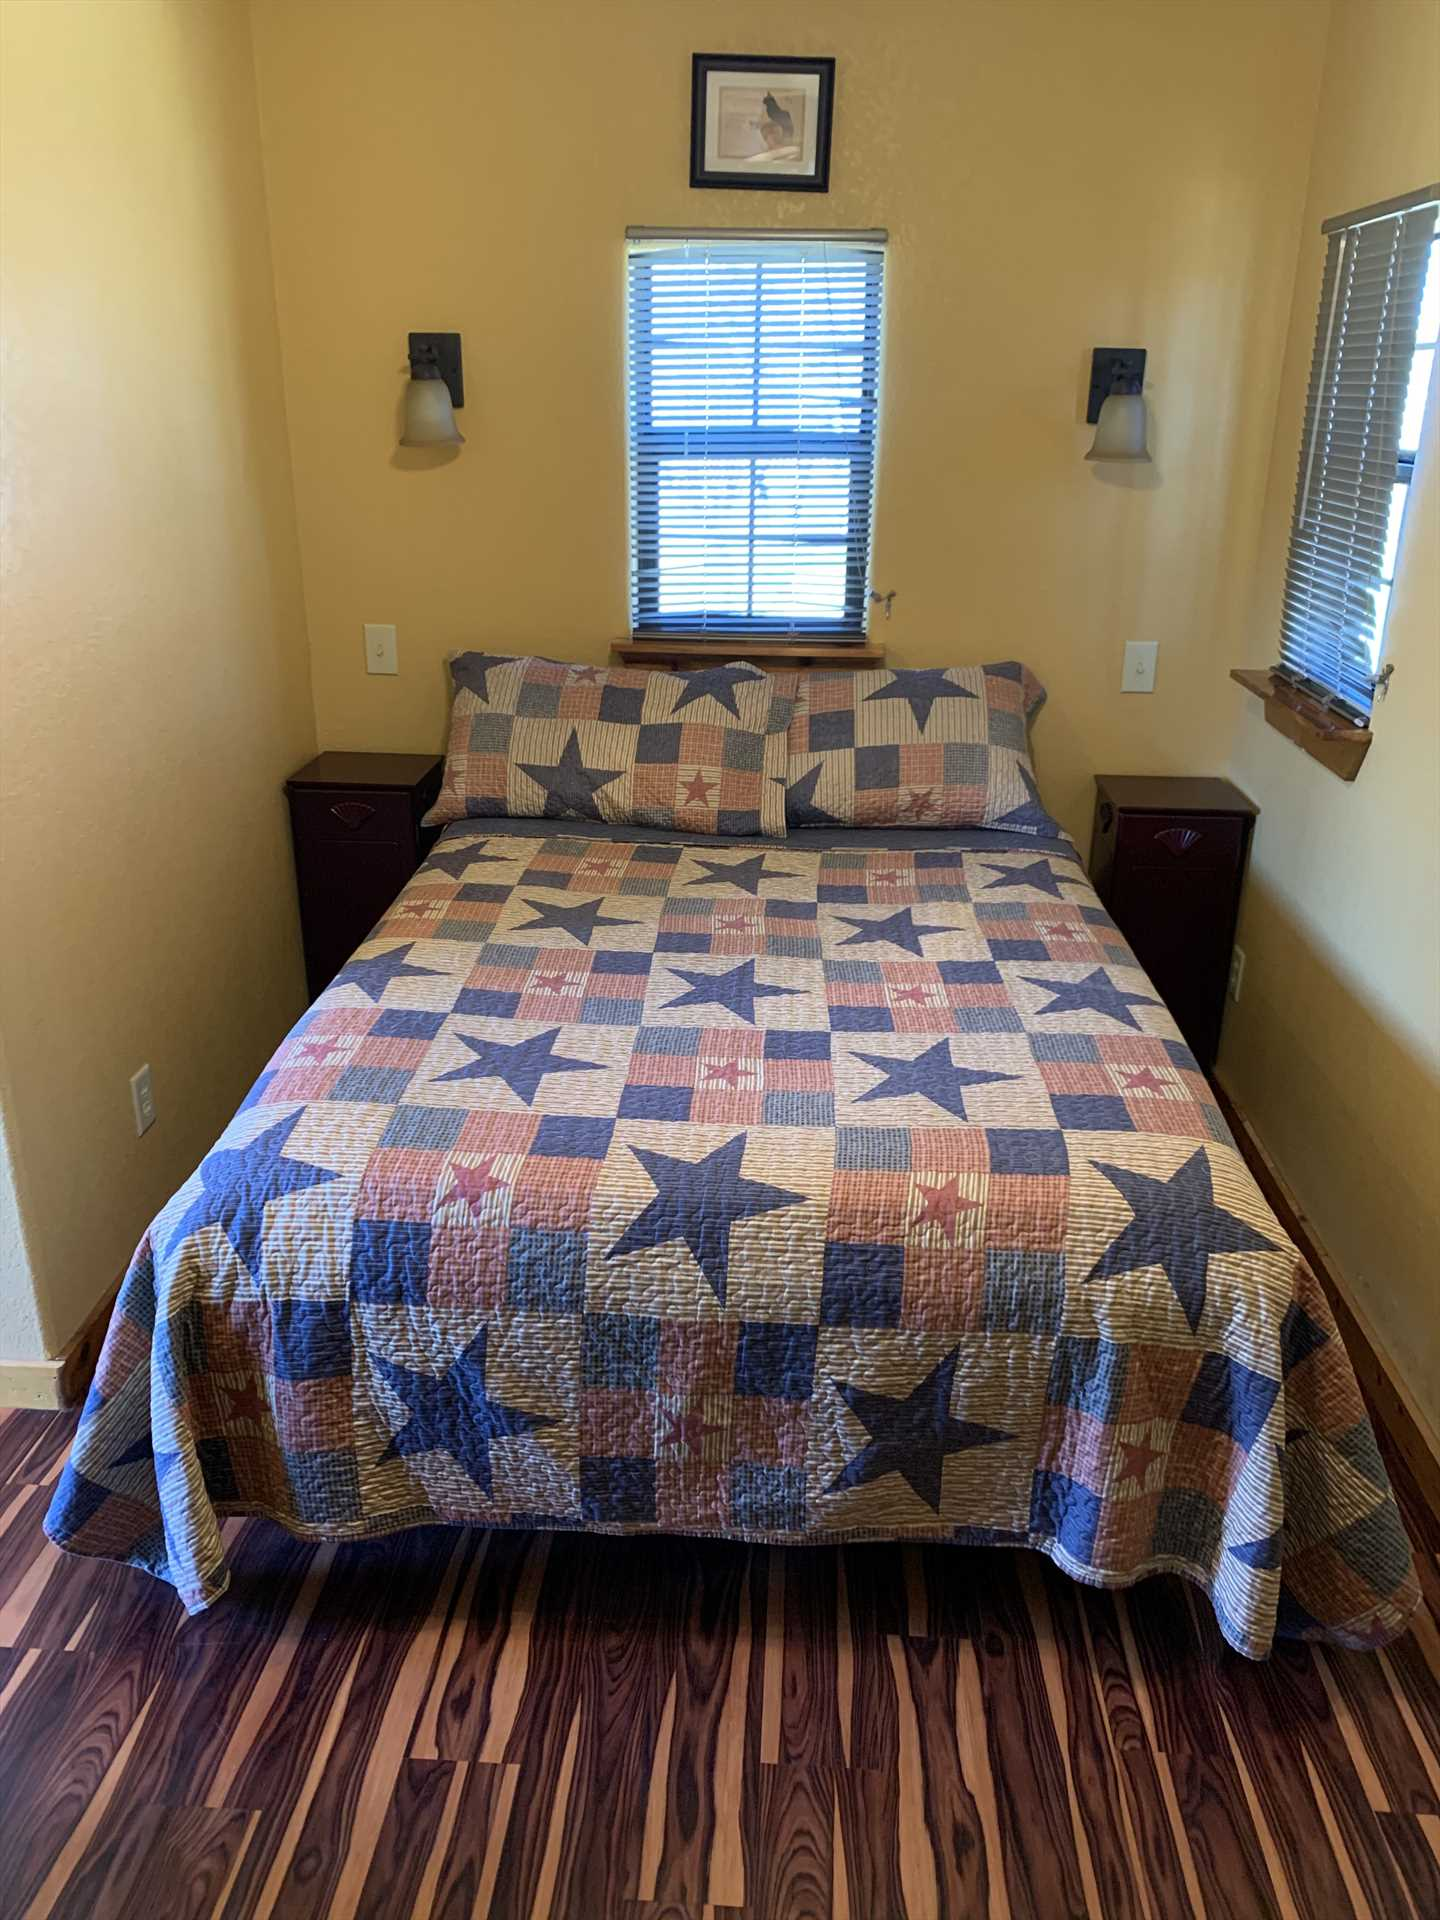 The queen bed provides sweet slumber for two, and there is a roll-away bed option available for a third guest.